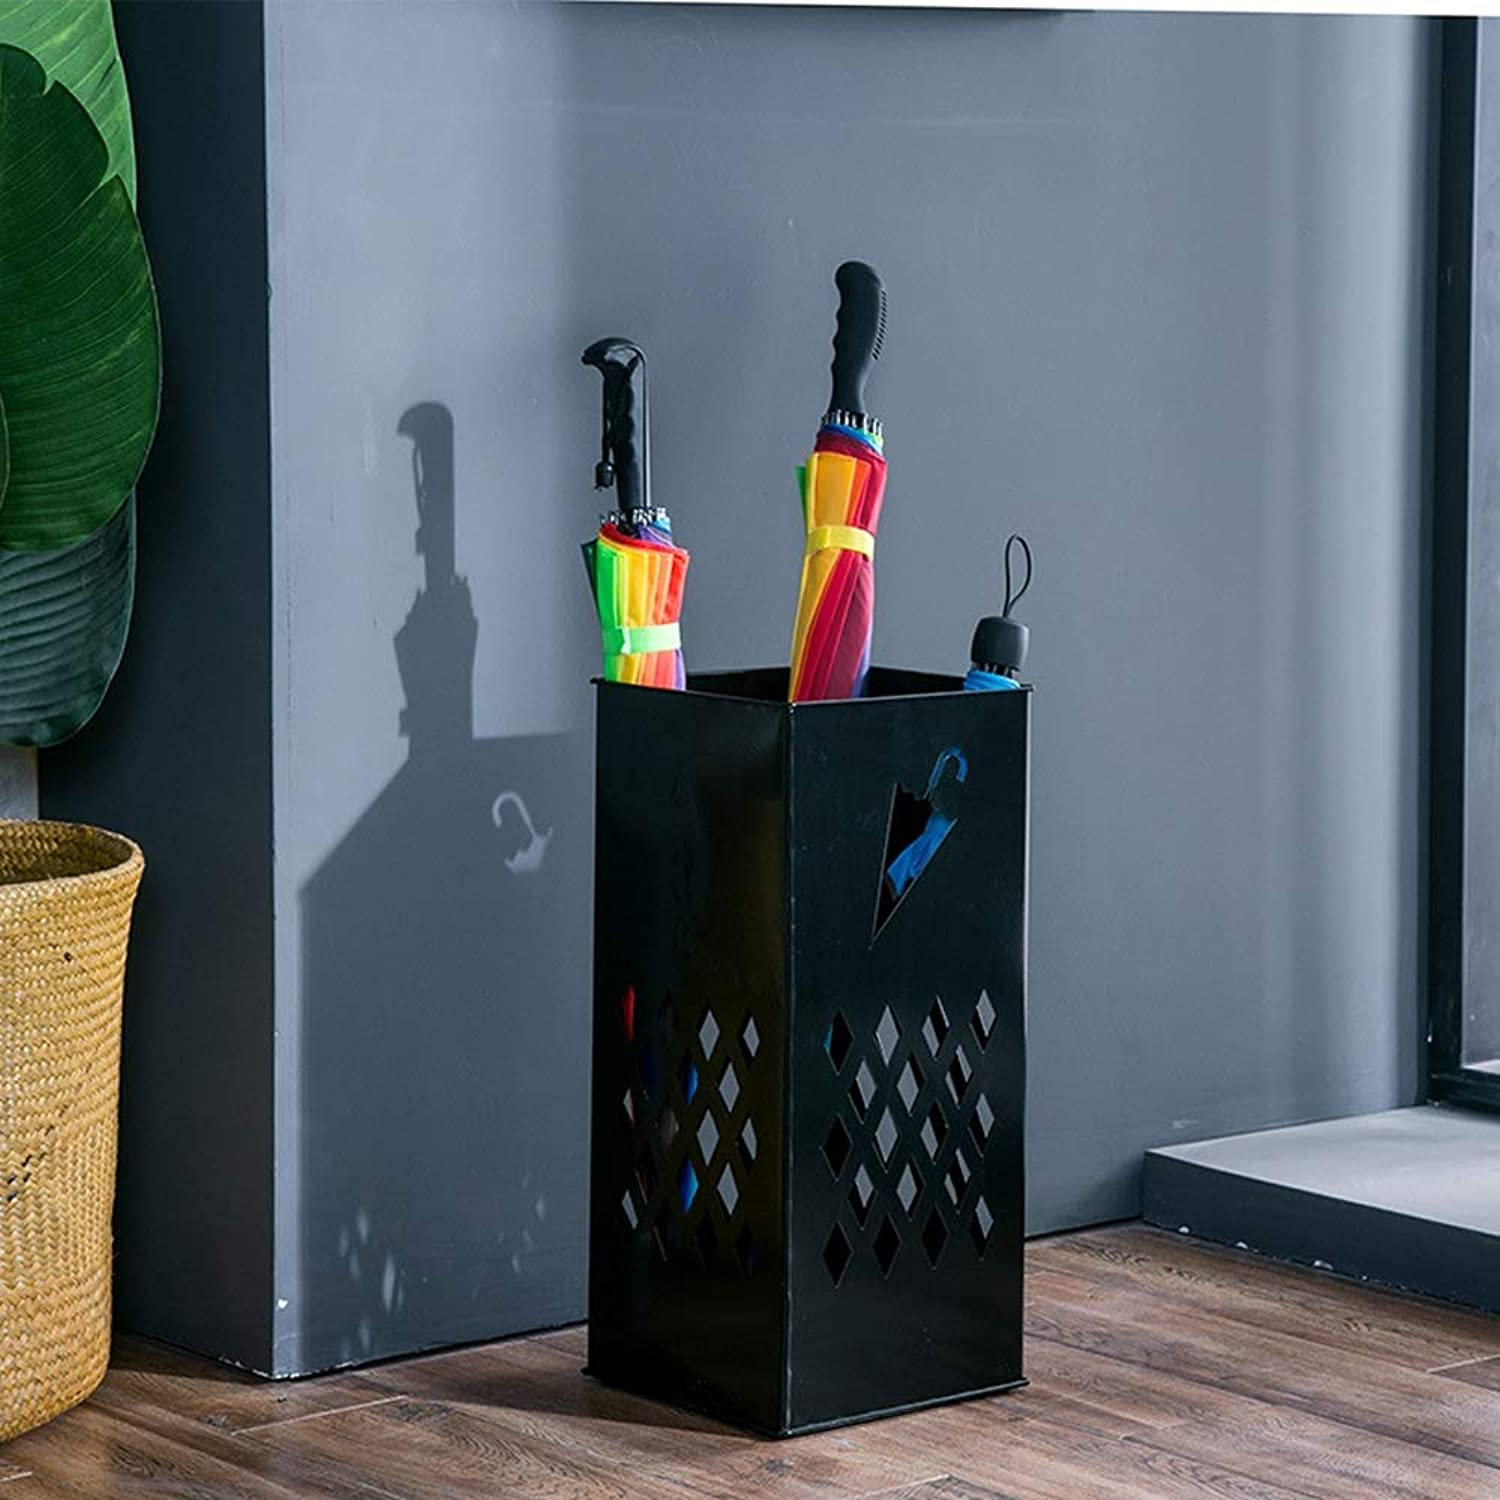 Jia He Umbrella Stand Rack Household Foyer Umbrella Storage Bucket European Style Simple Hollow rain Gear Storage Rack - 3 colors Optional @@ (color   Black)